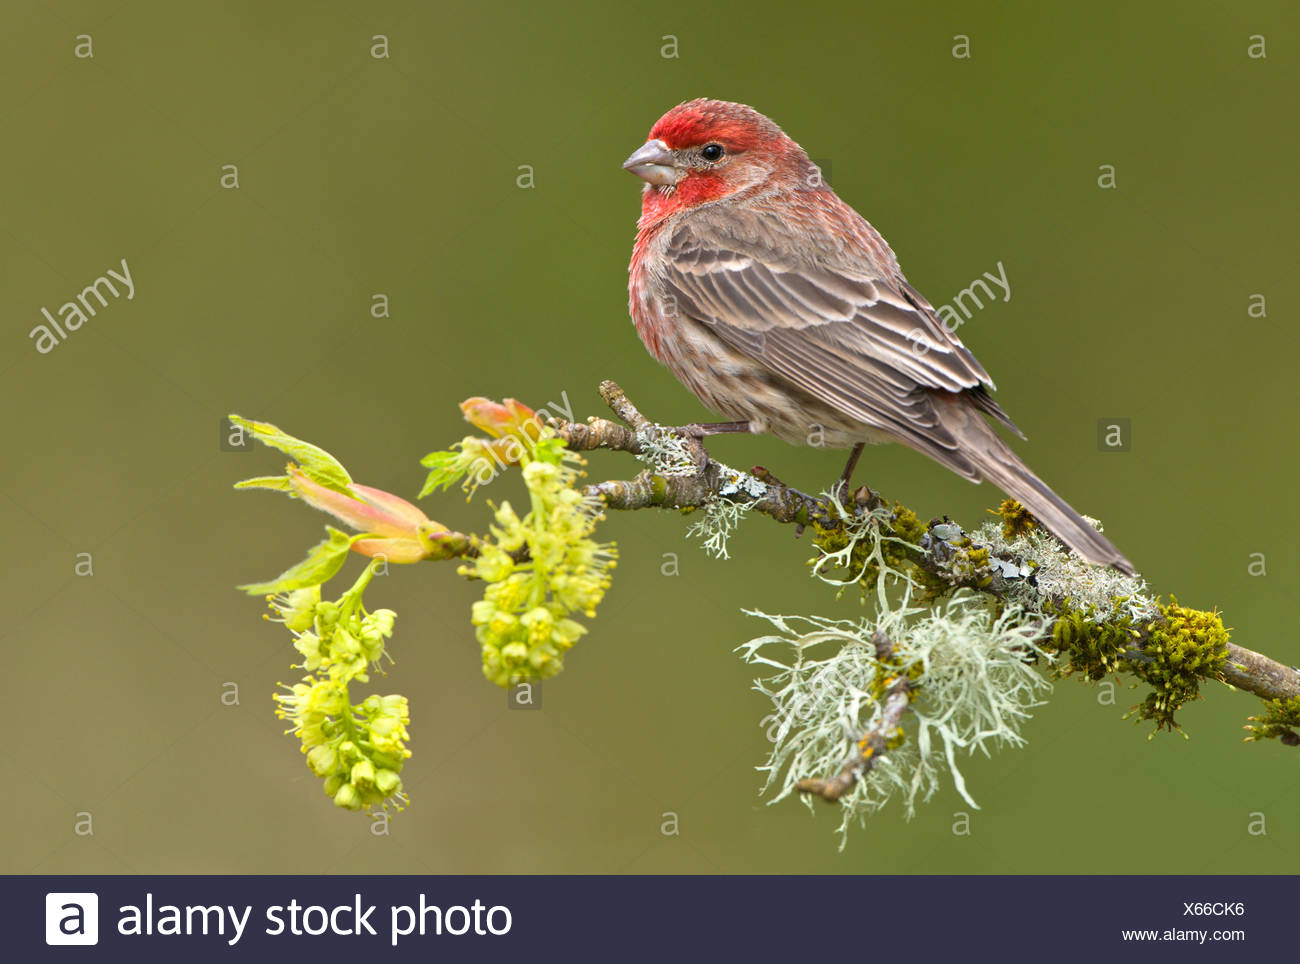 House finch (Carpodacus mexicanus) on budding apple tree branch, Victoria, Vancouver Island, British Columbia, Canada - Stock Image